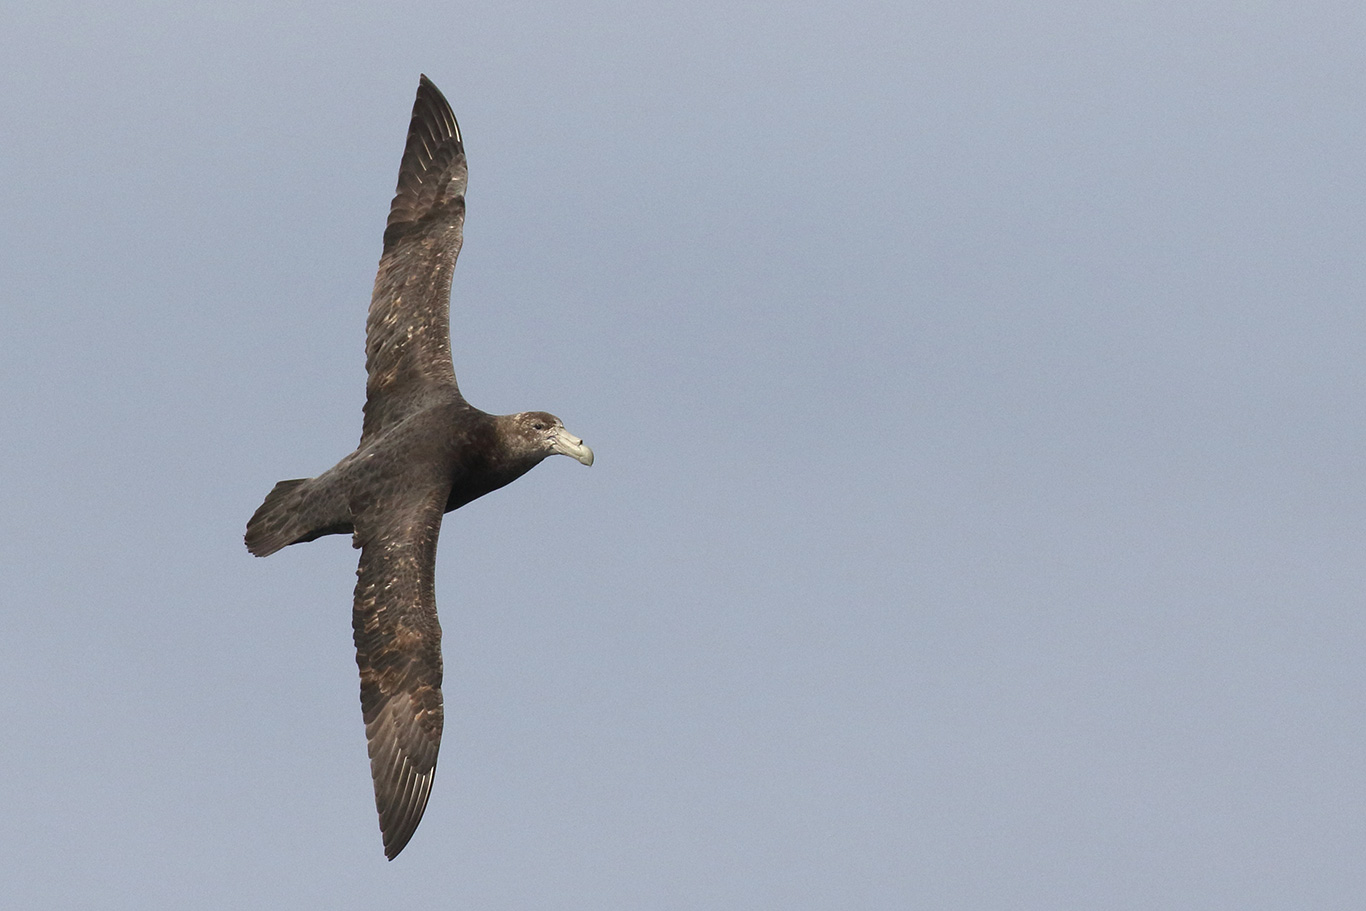 Southern Giant Petrel, South-east Pacific Ocean, Chile.